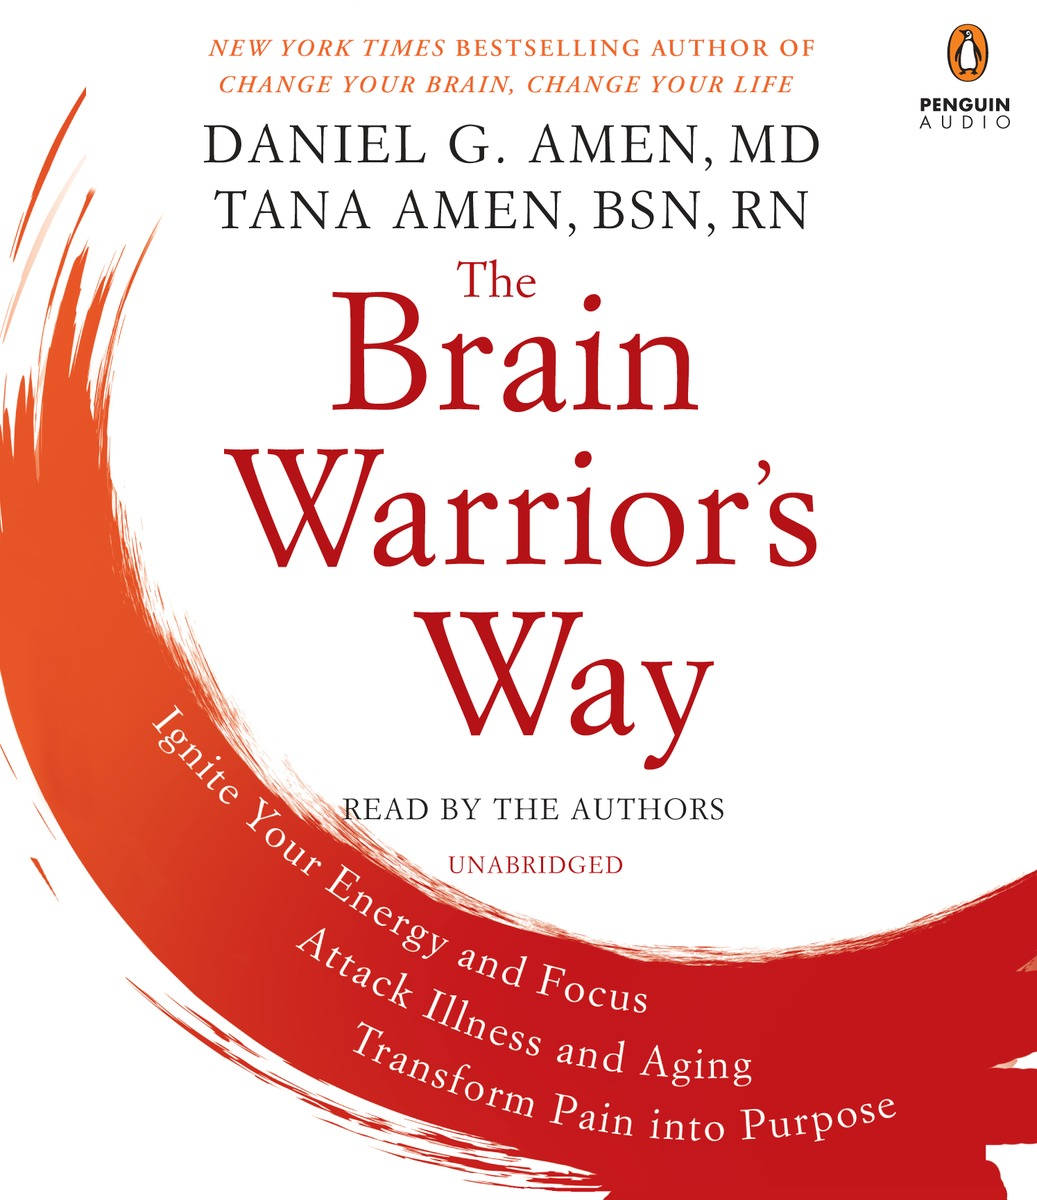 The Brain Warrior's Way words can change your brain